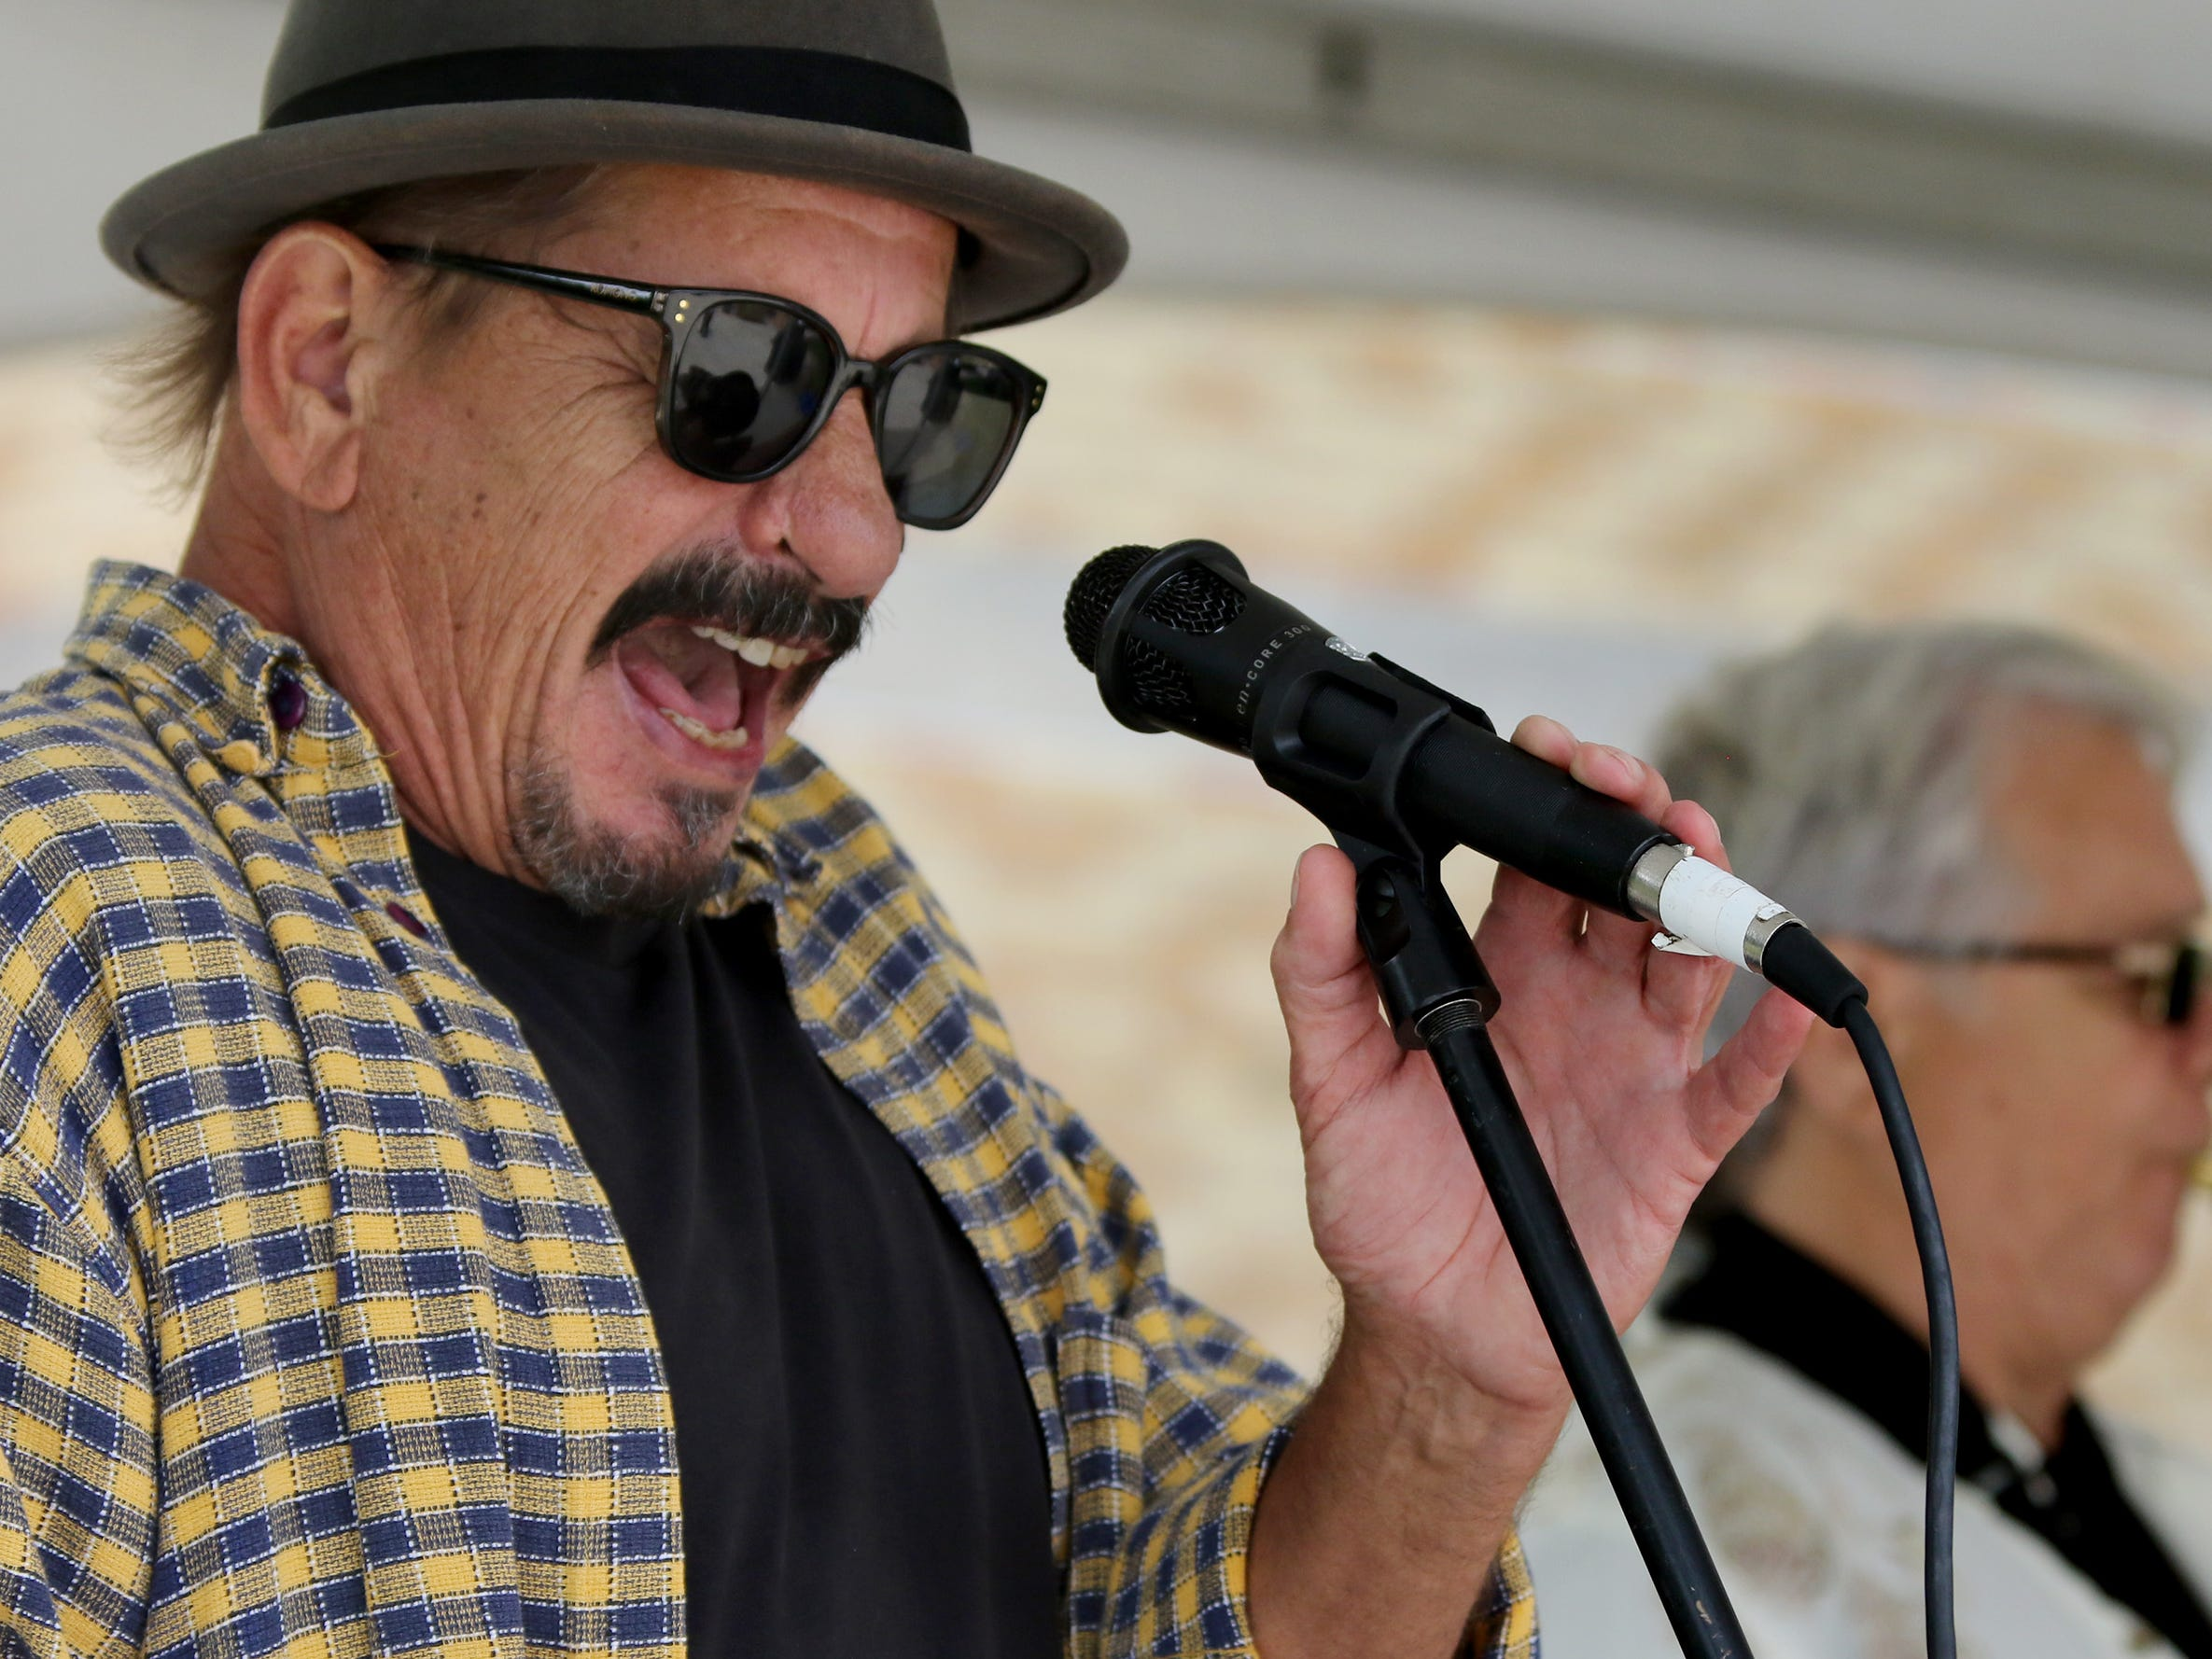 Danny Miller performs with his namesake band during the sixth annual Taste of Mequon in the vicinity of City Hall and on Cedarburg Road on Sept. 8.